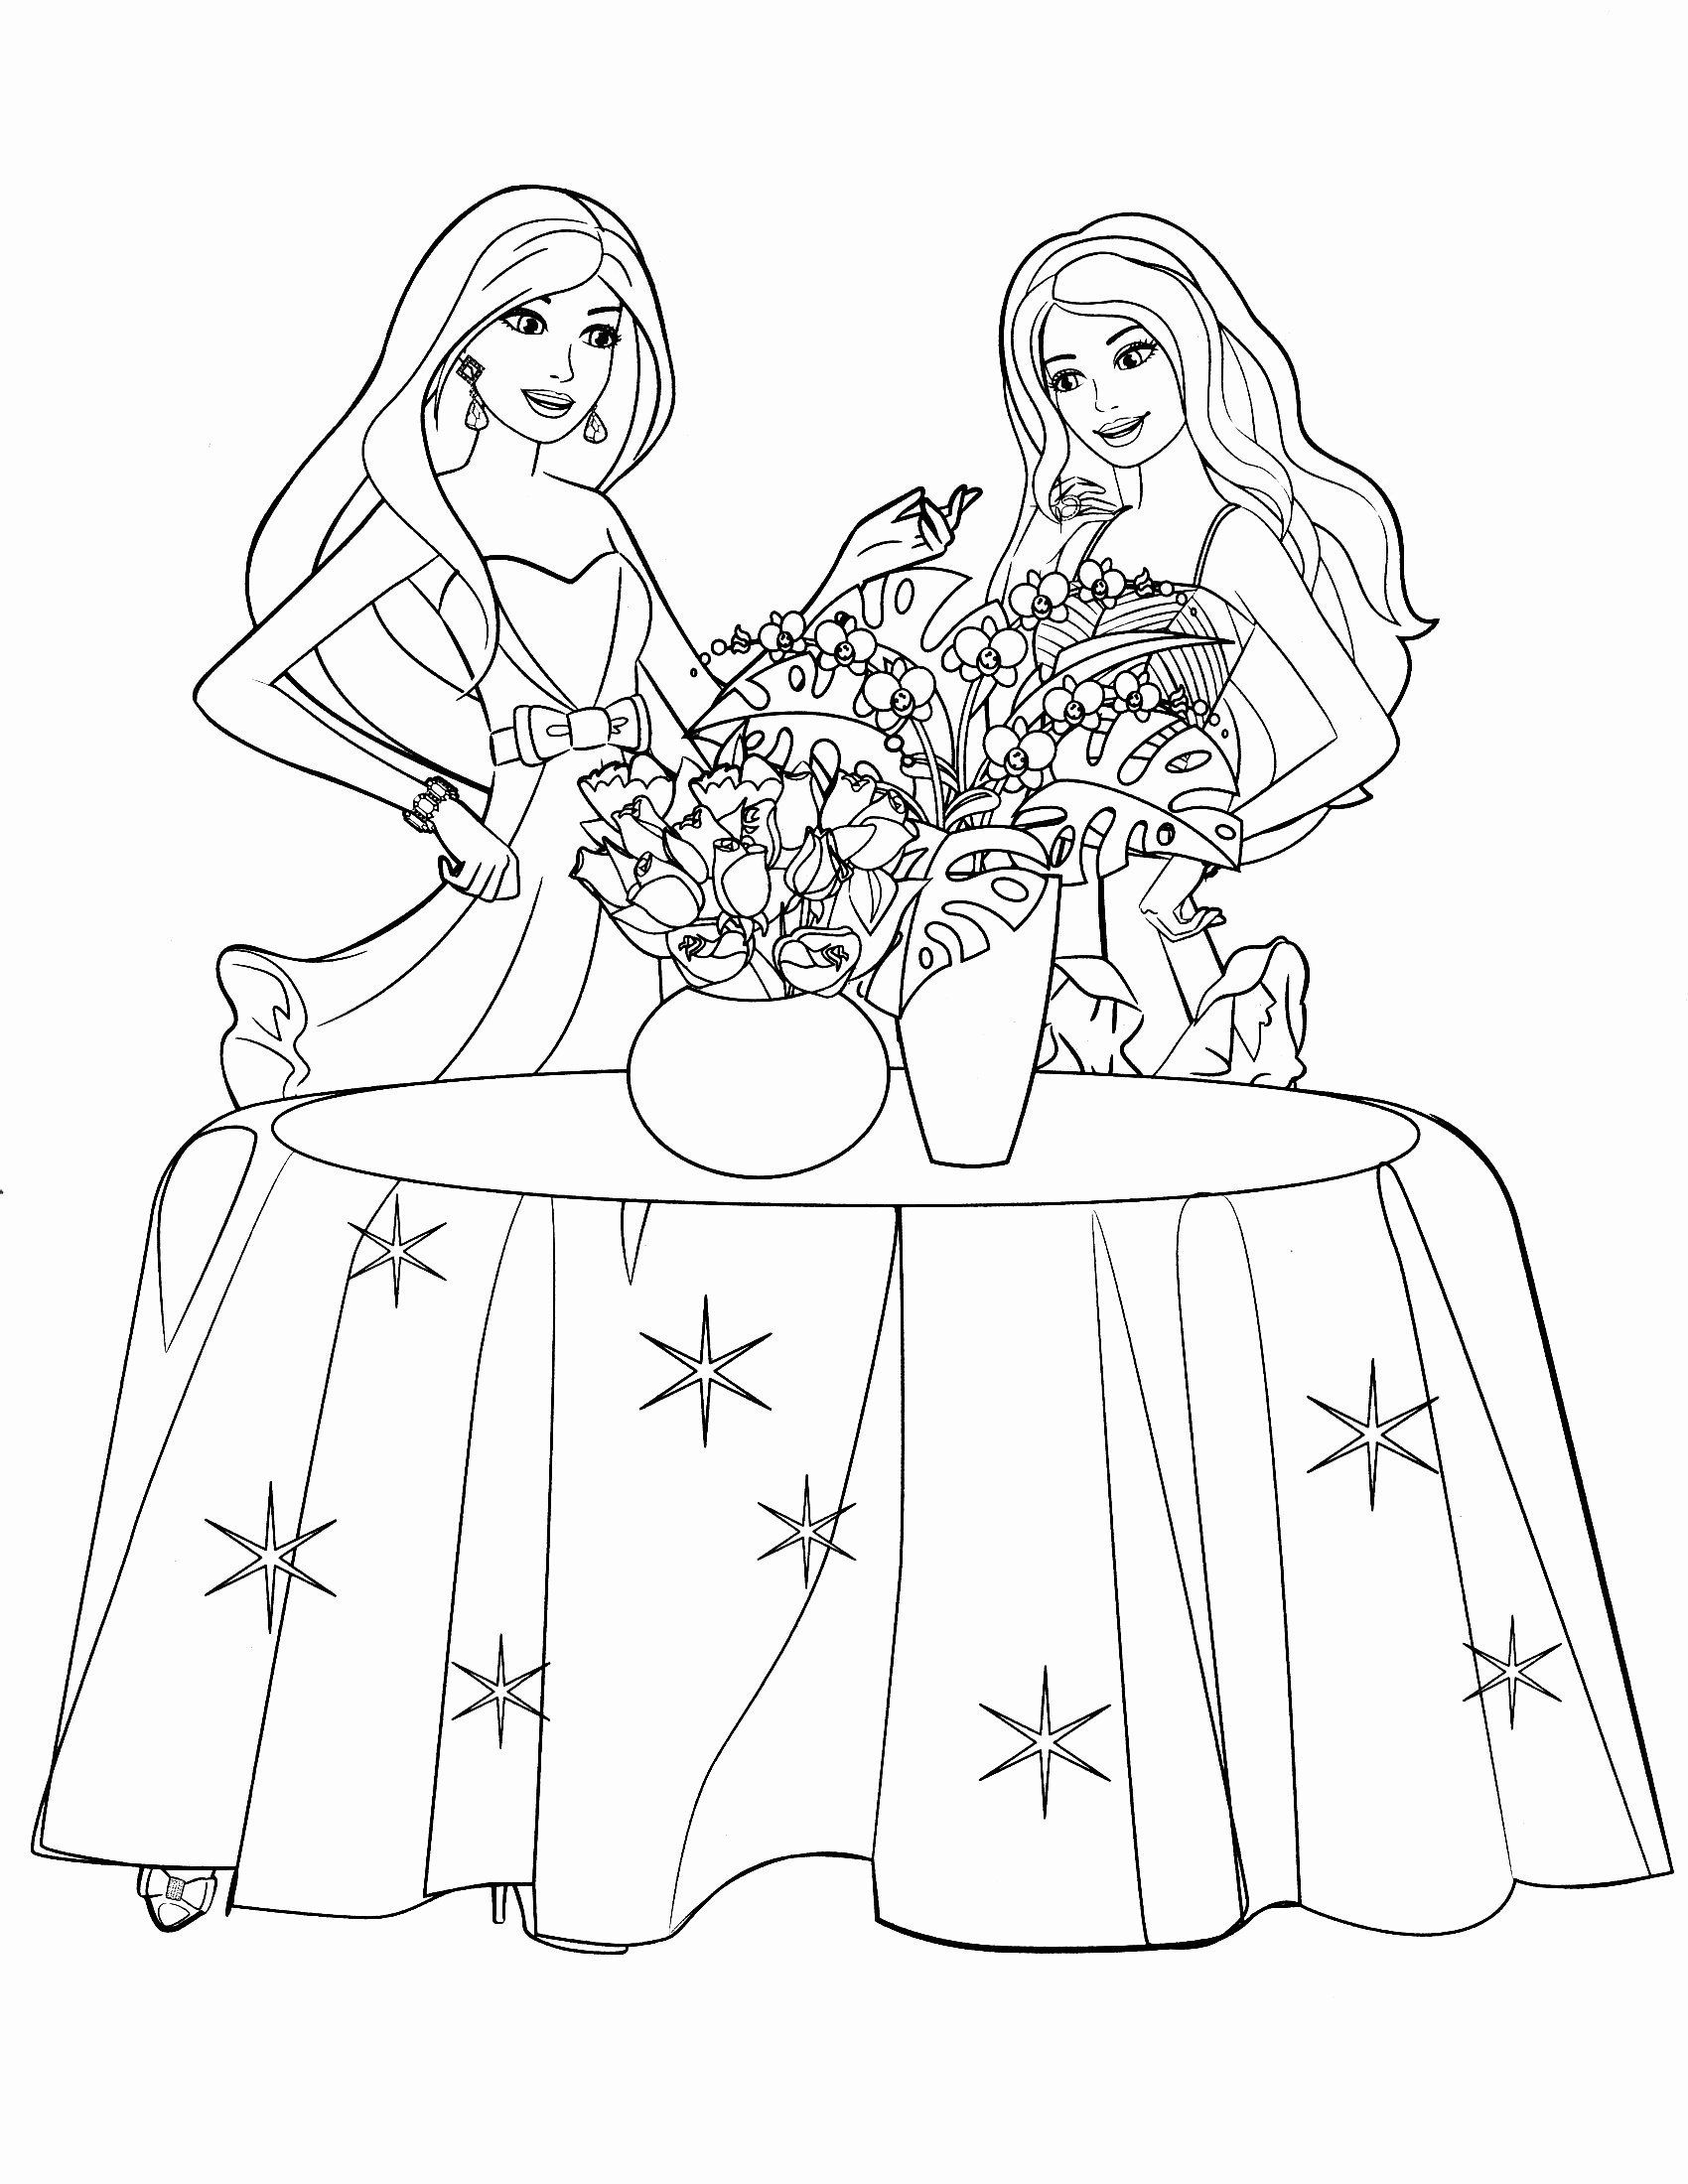 Barbie Coloring Pages Free A 38 Barbie Coloring Pages Games Free Online In 2020 Barbie Coloring Pages Barbie Coloring Star Coloring Pages